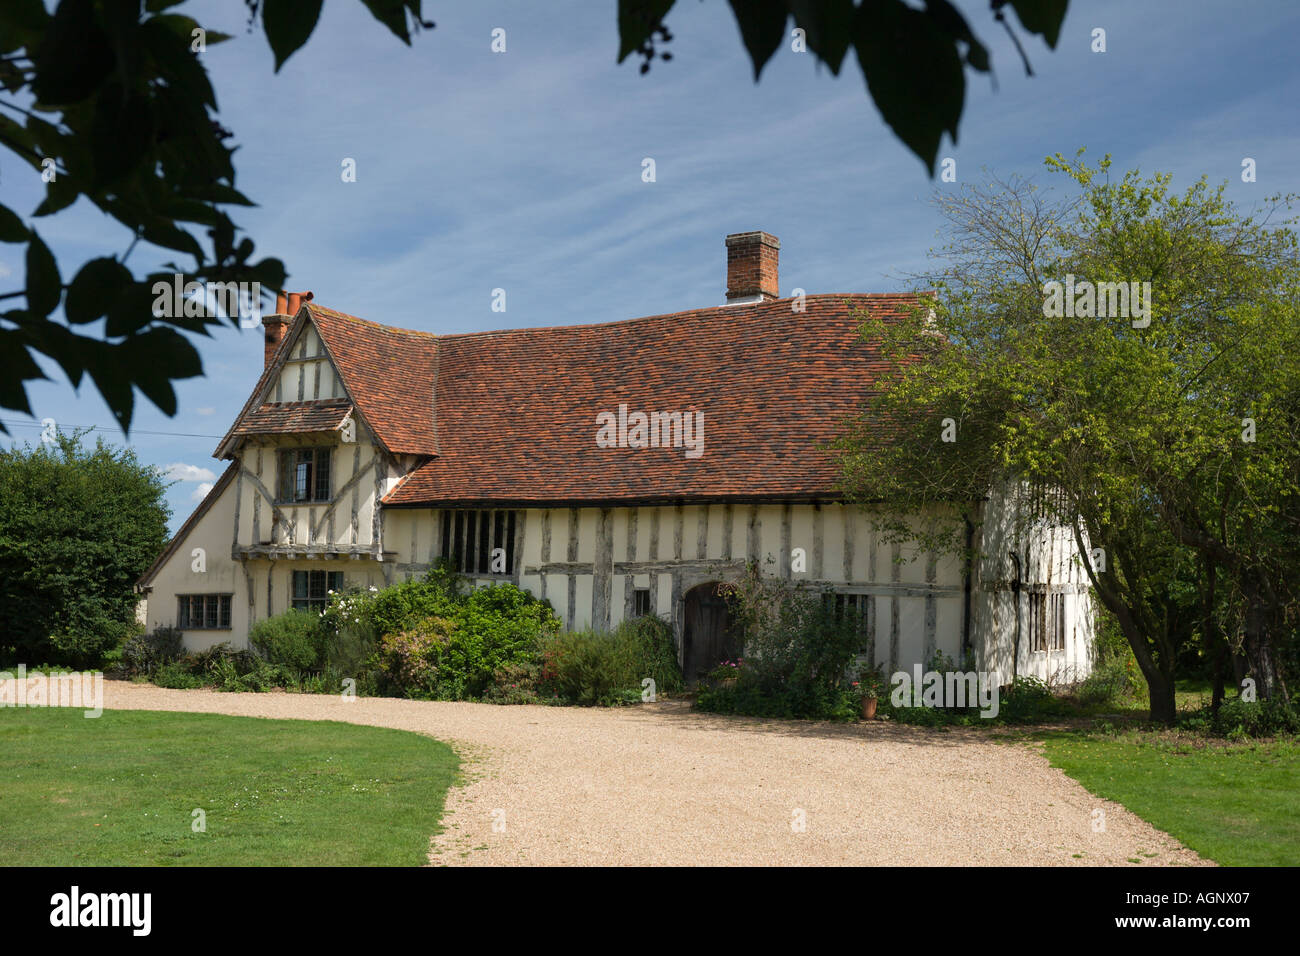 11th Century English Home - valley-farm-a-beautiful-15th-century-medieval-farm-house-in-historic-AGNX07_Beautiful 11th Century English Home - valley-farm-a-beautiful-15th-century-medieval-farm-house-in-historic-AGNX07  Image_82472.jpg